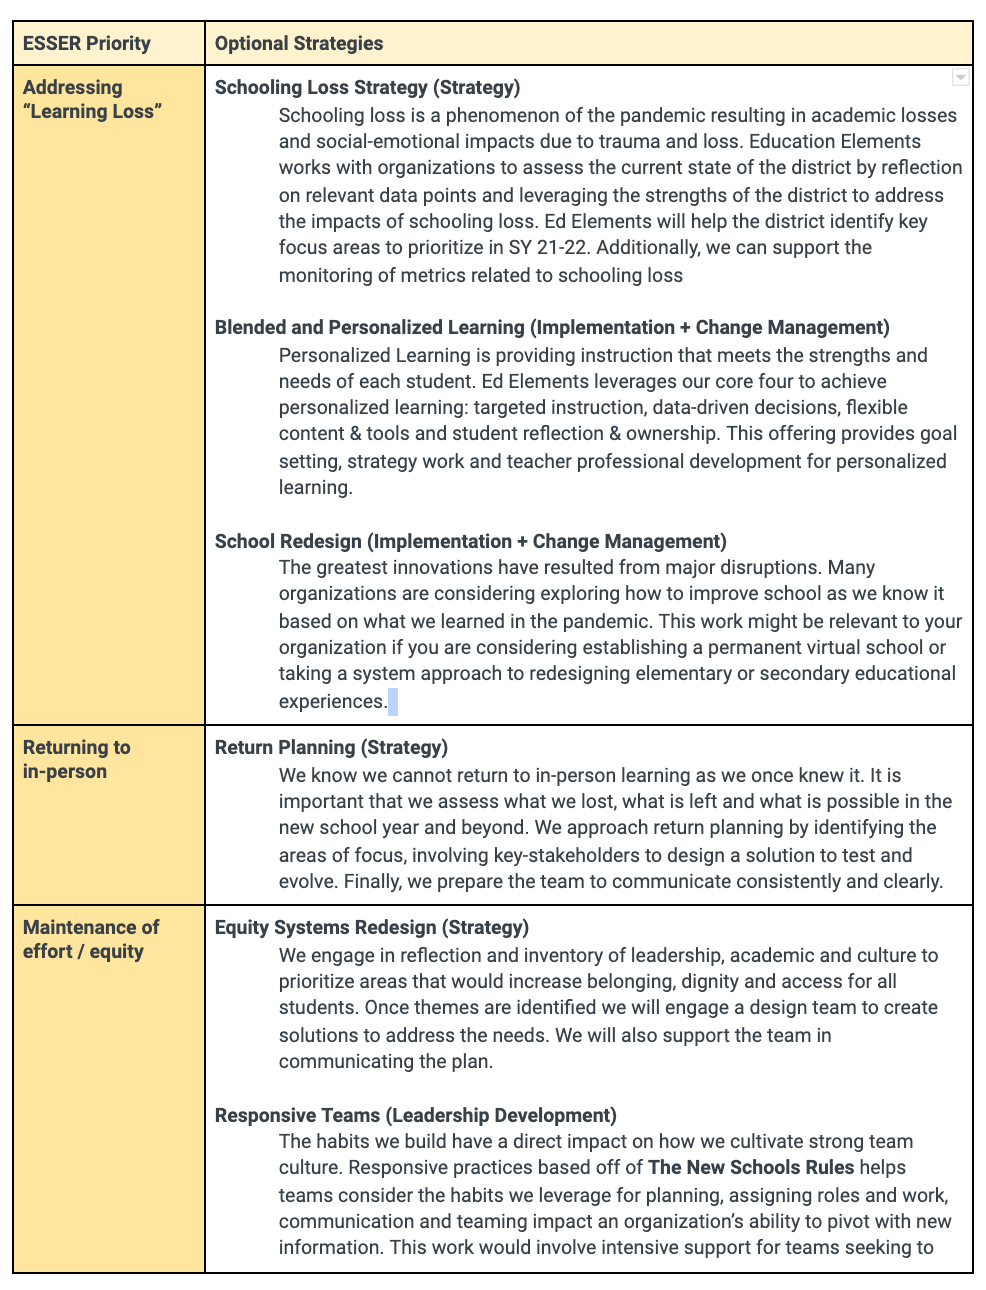 ESSER Support Strategies Table